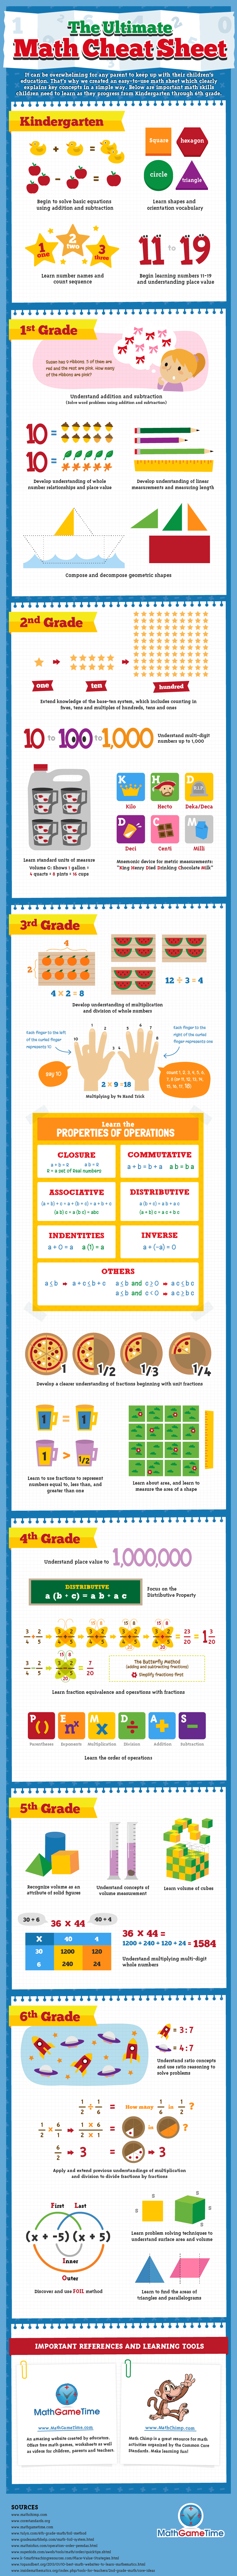 The Ultimate Math Cheat Sheet Infographic